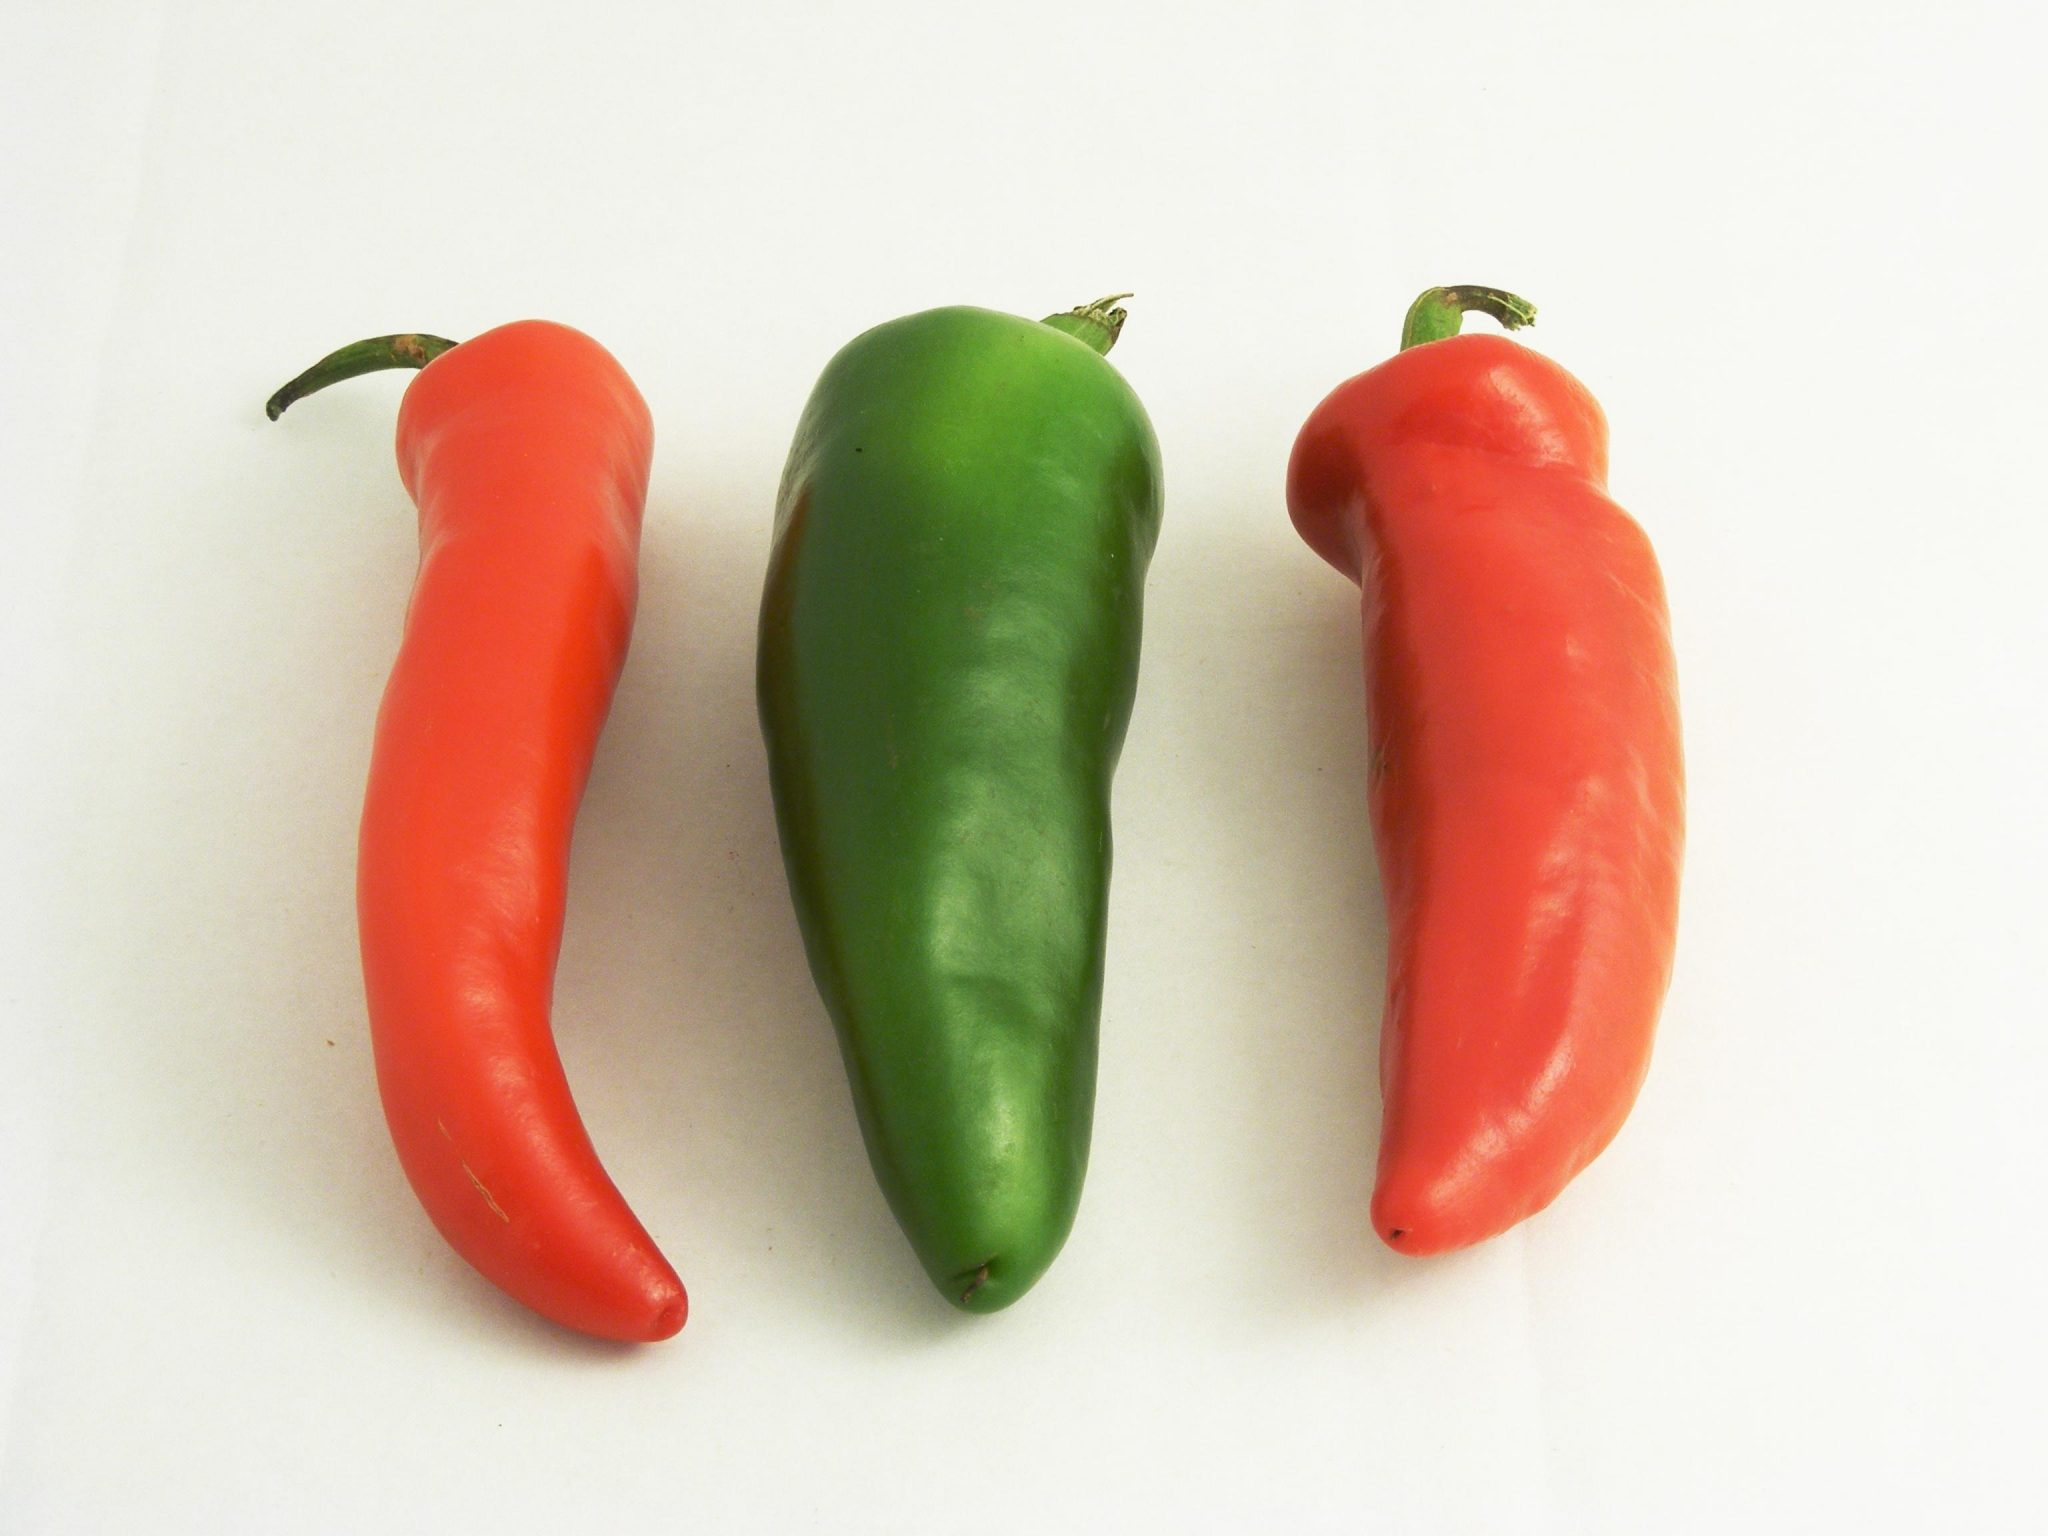 Grow a Variety of Peppers in Your Garden